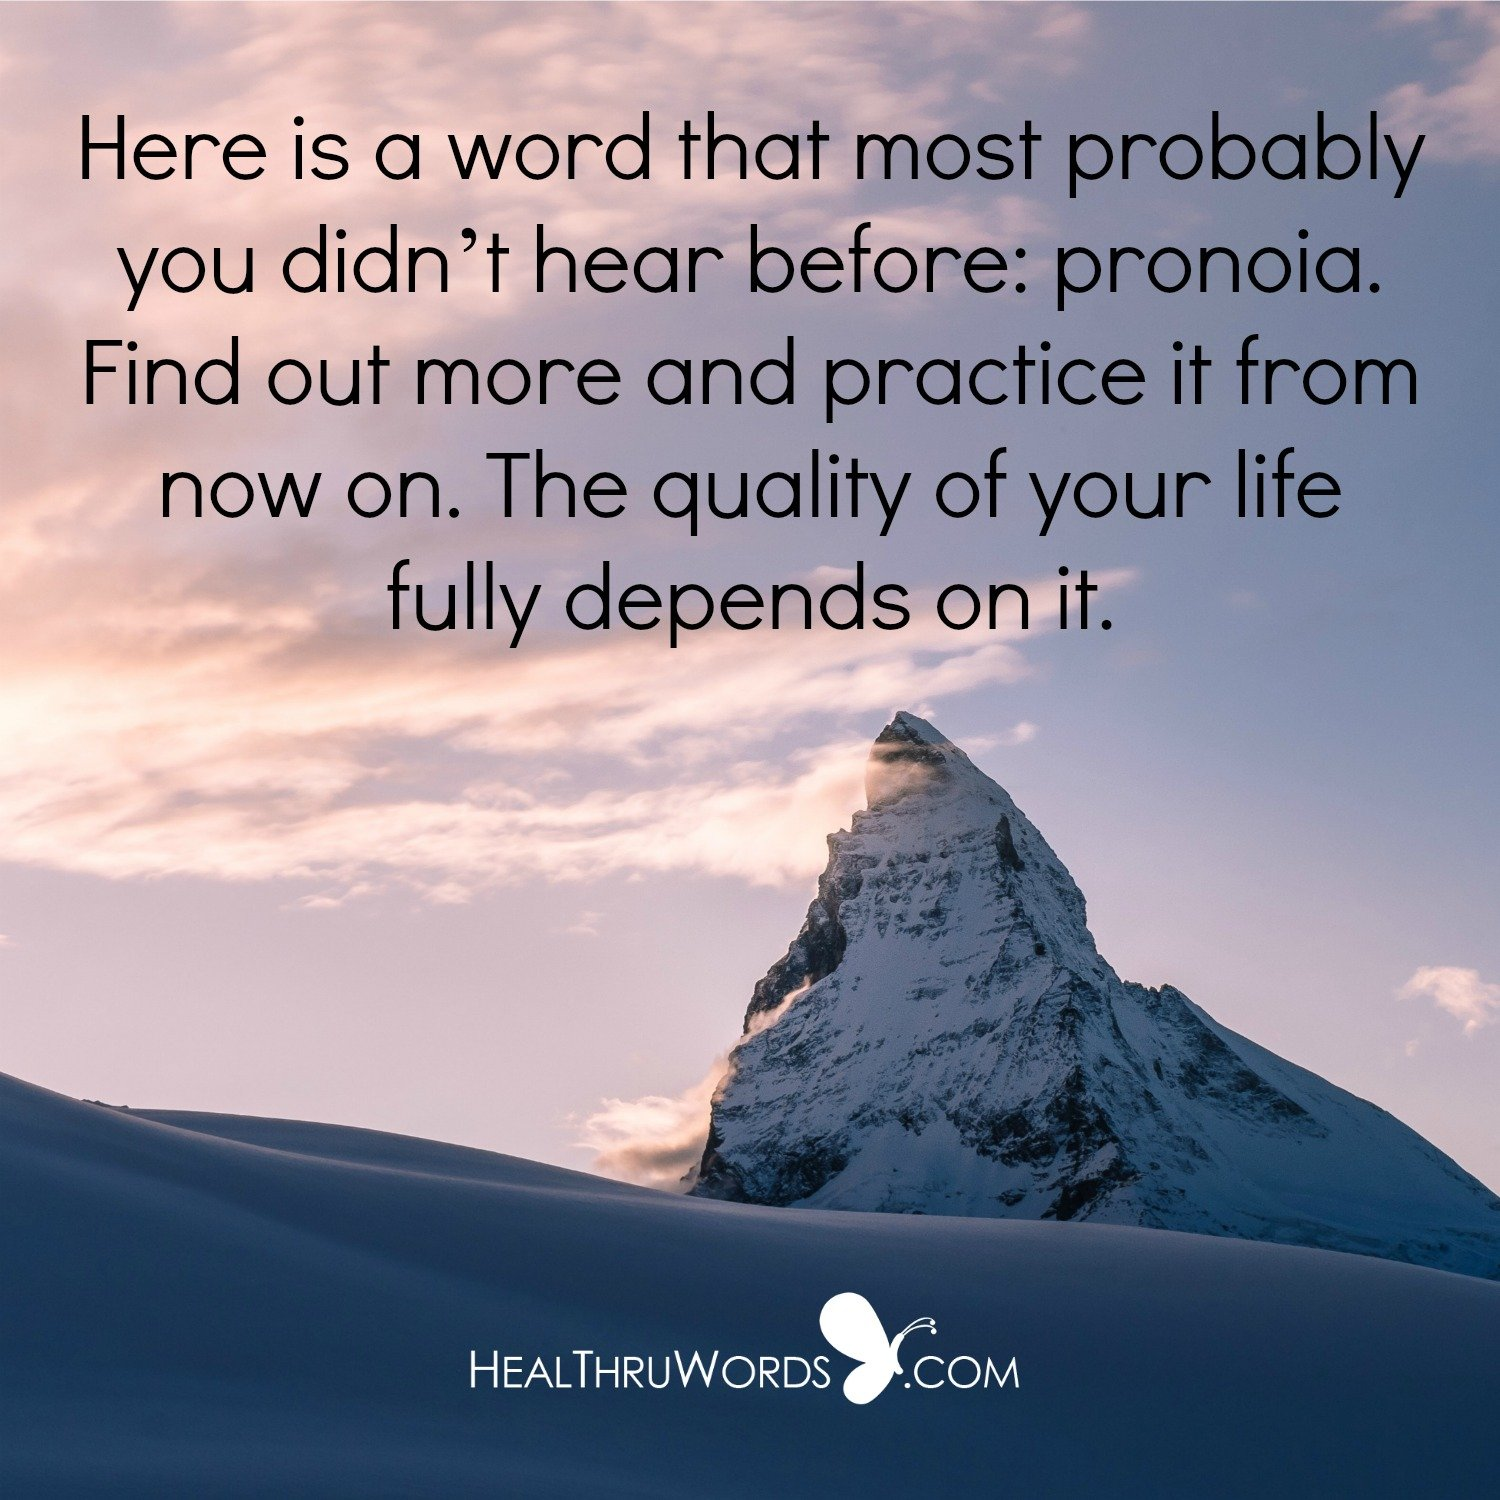 Inspirational Image: Practicing Pronoia